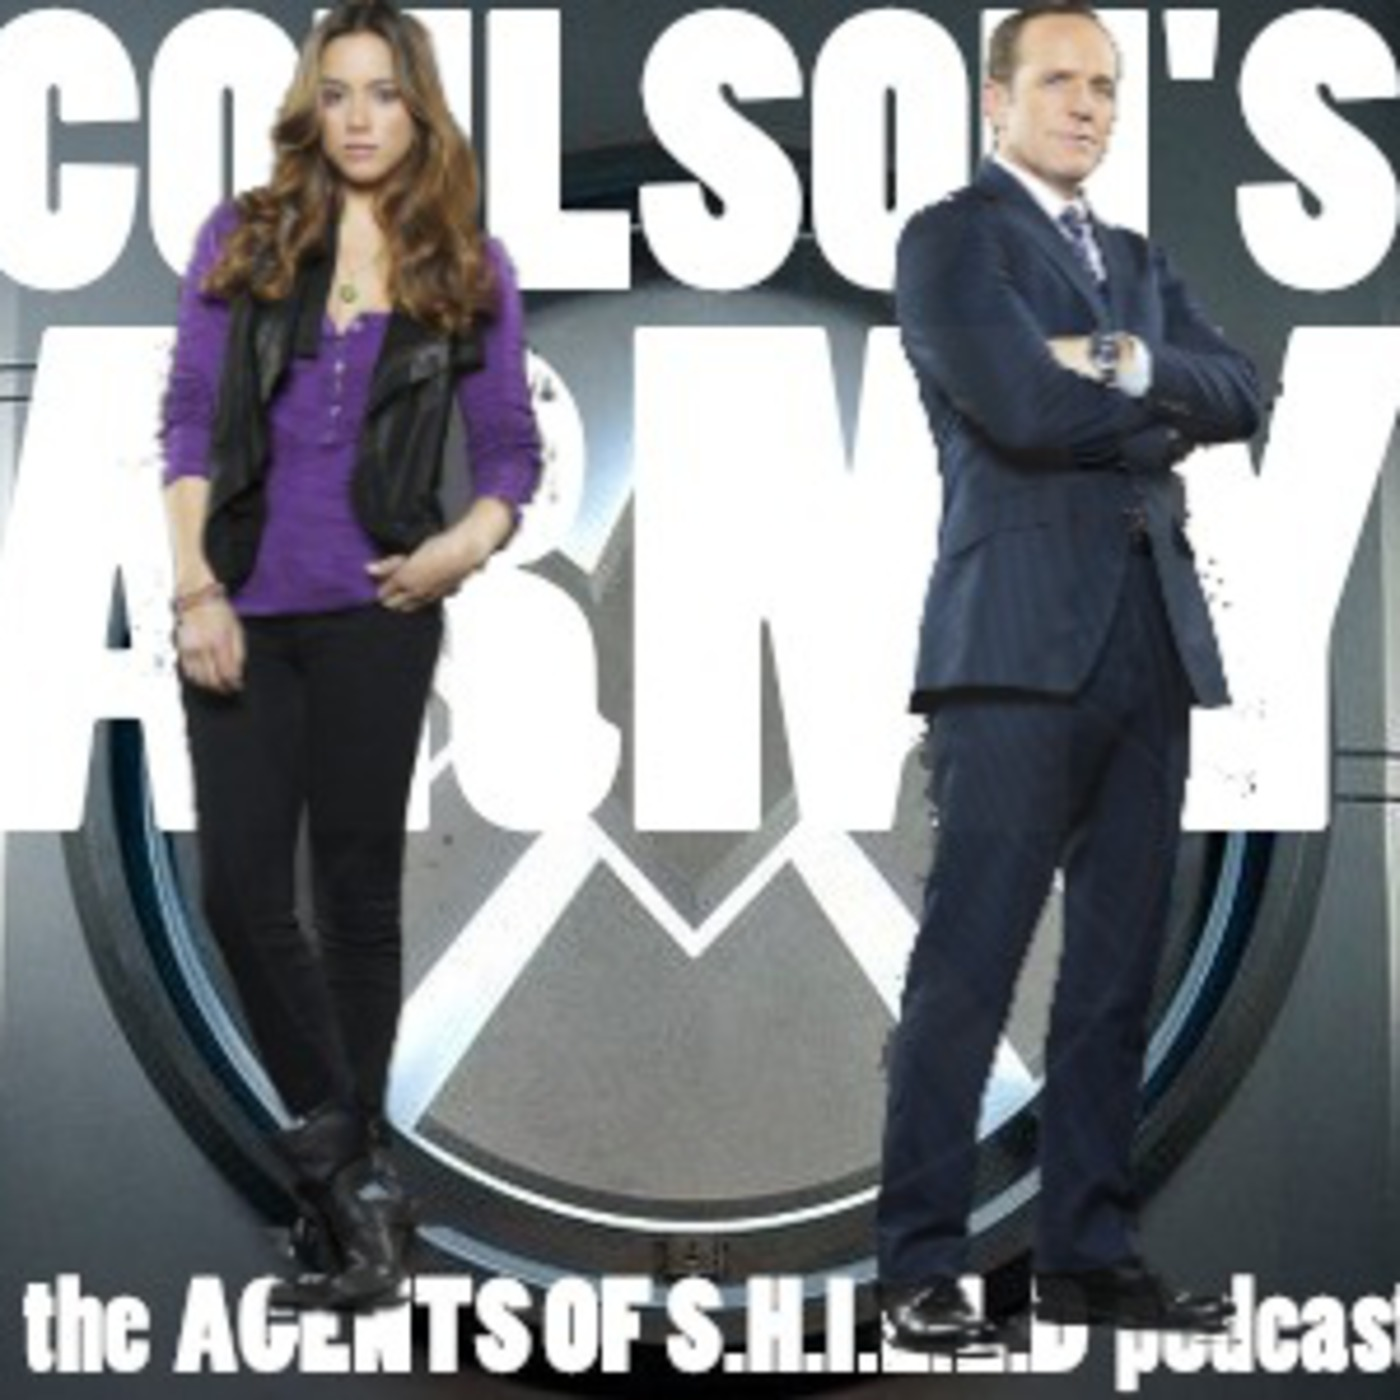 Coulson's Army: The Agents of S.H.I.E.L.D Podcast